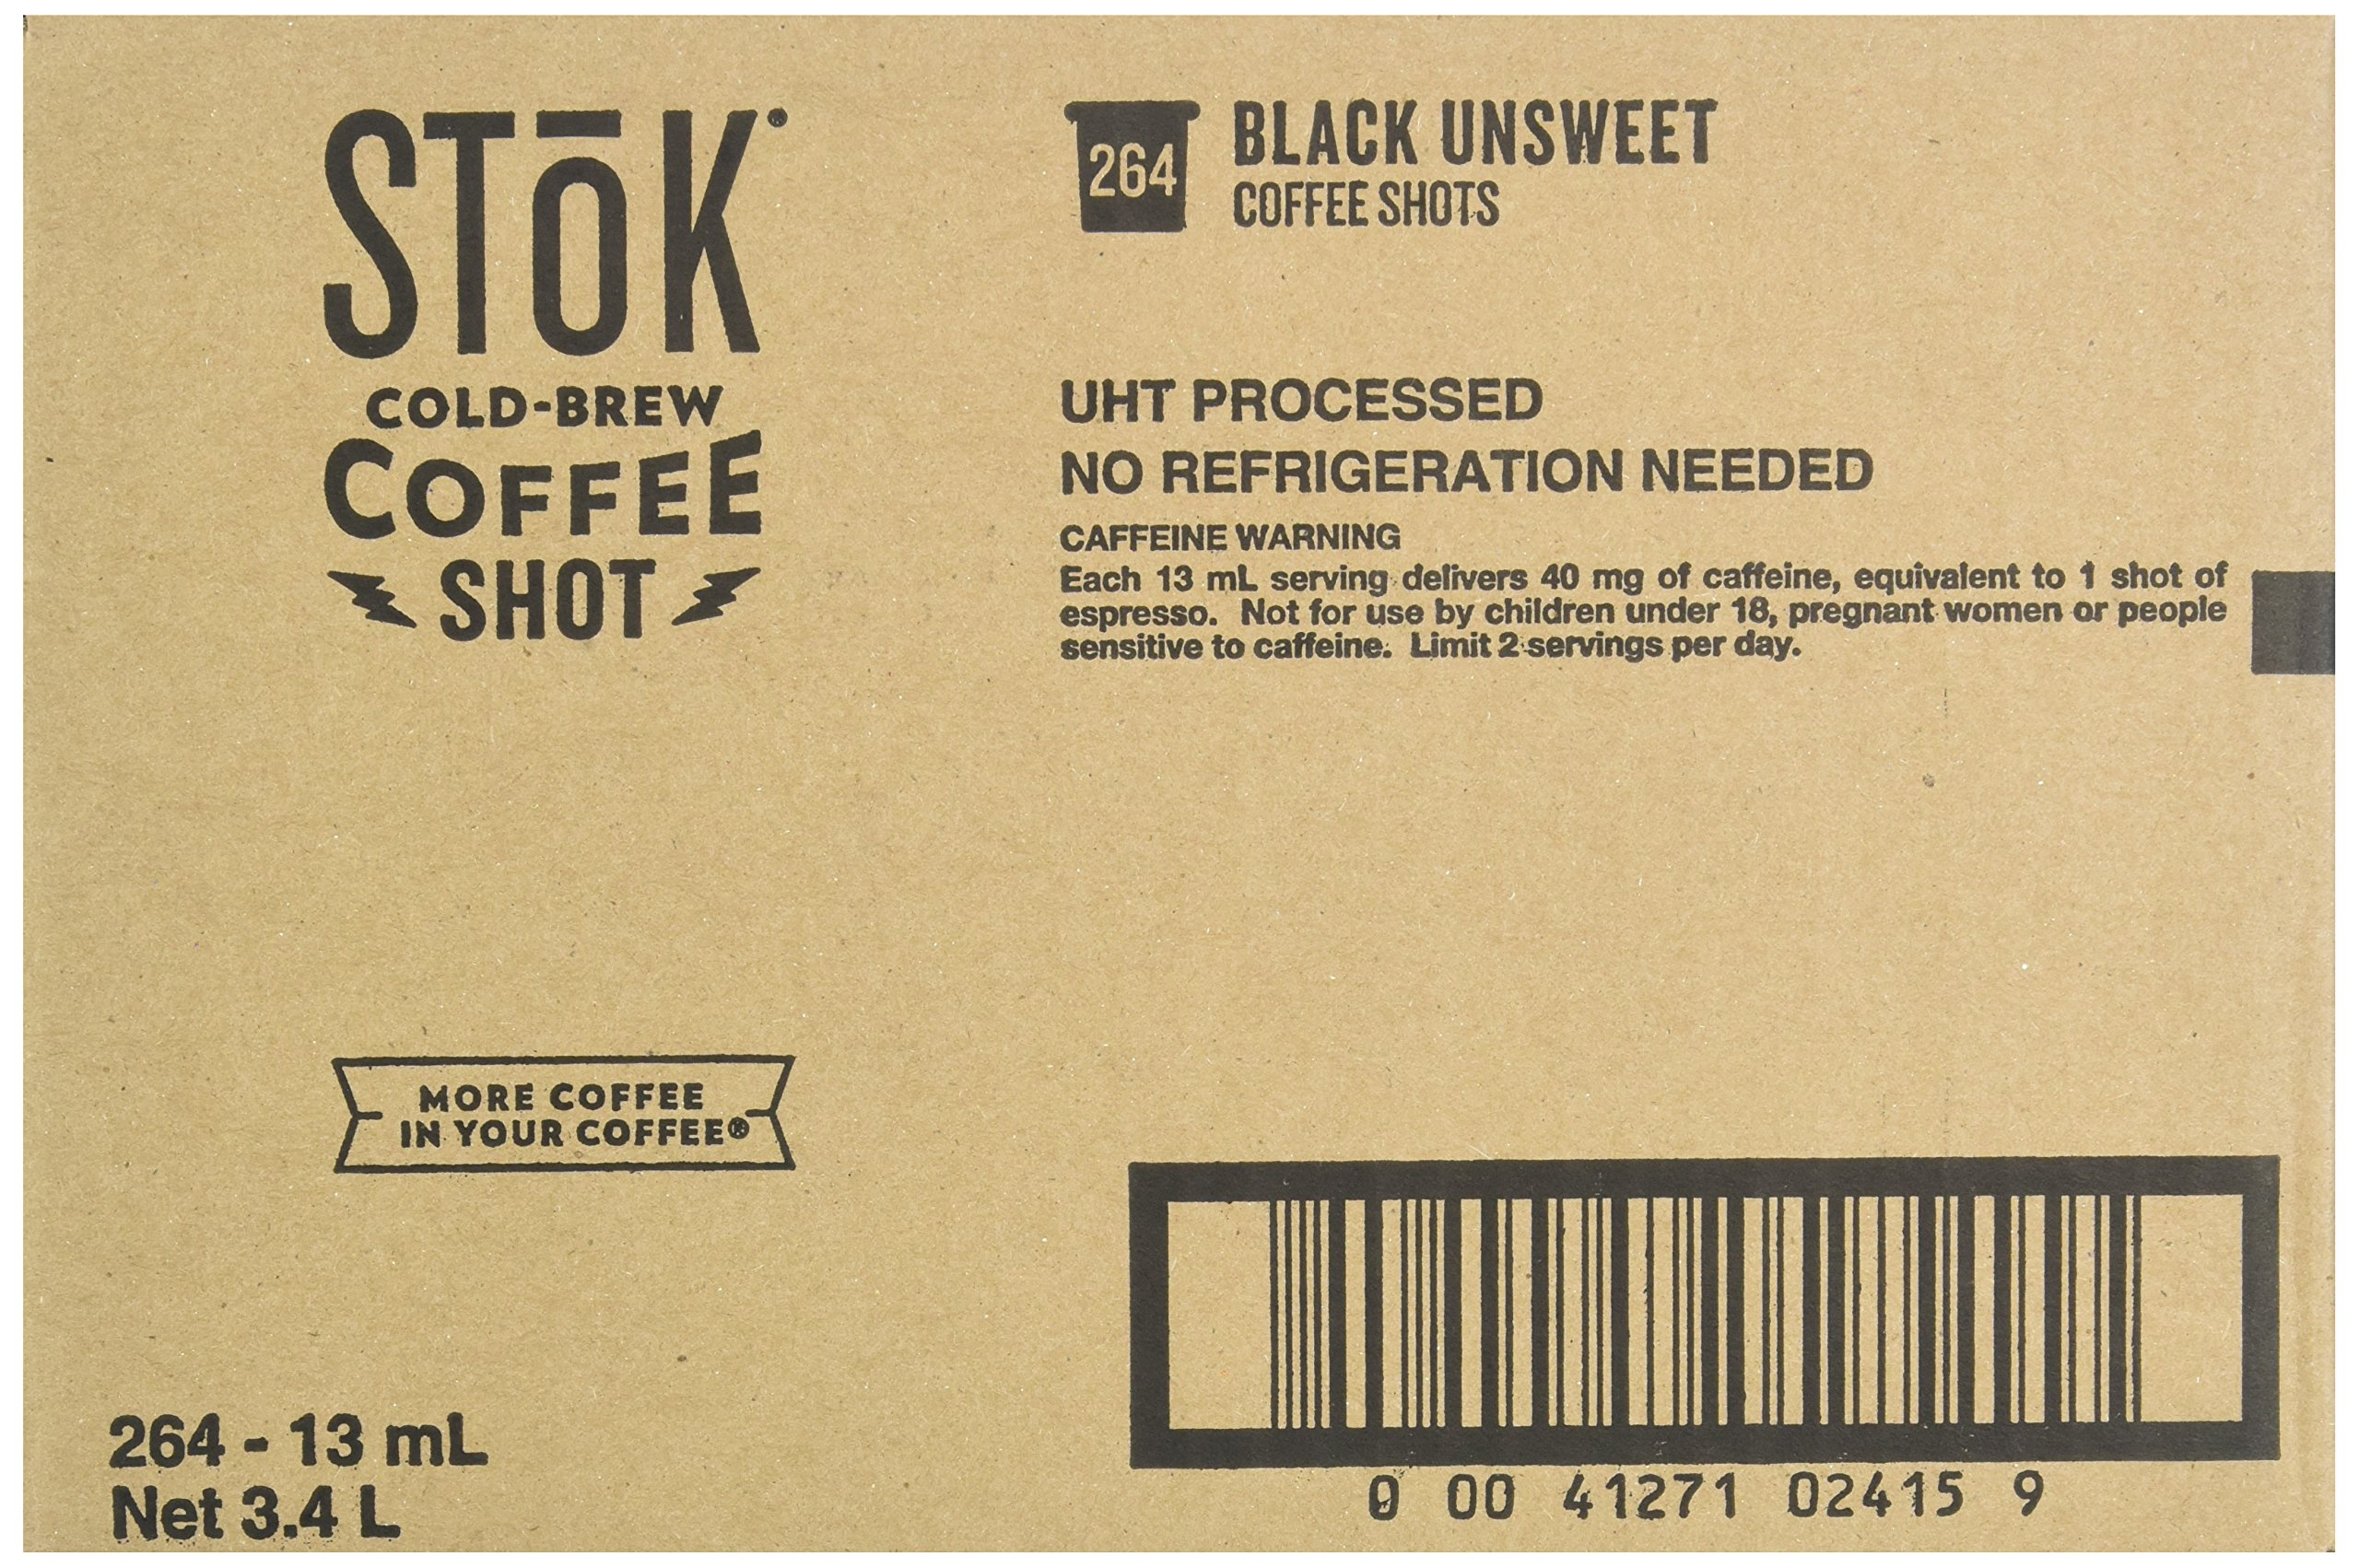 SToK Caffeinated Black Coffee Shots, 264 Single-Serving Shots, Single-Serve Shot of Unsweetened Coffee, Add to Coffee for Extra Caffeine, 40mg Caffeine (Packaging May vary) by SToK (Image #6)